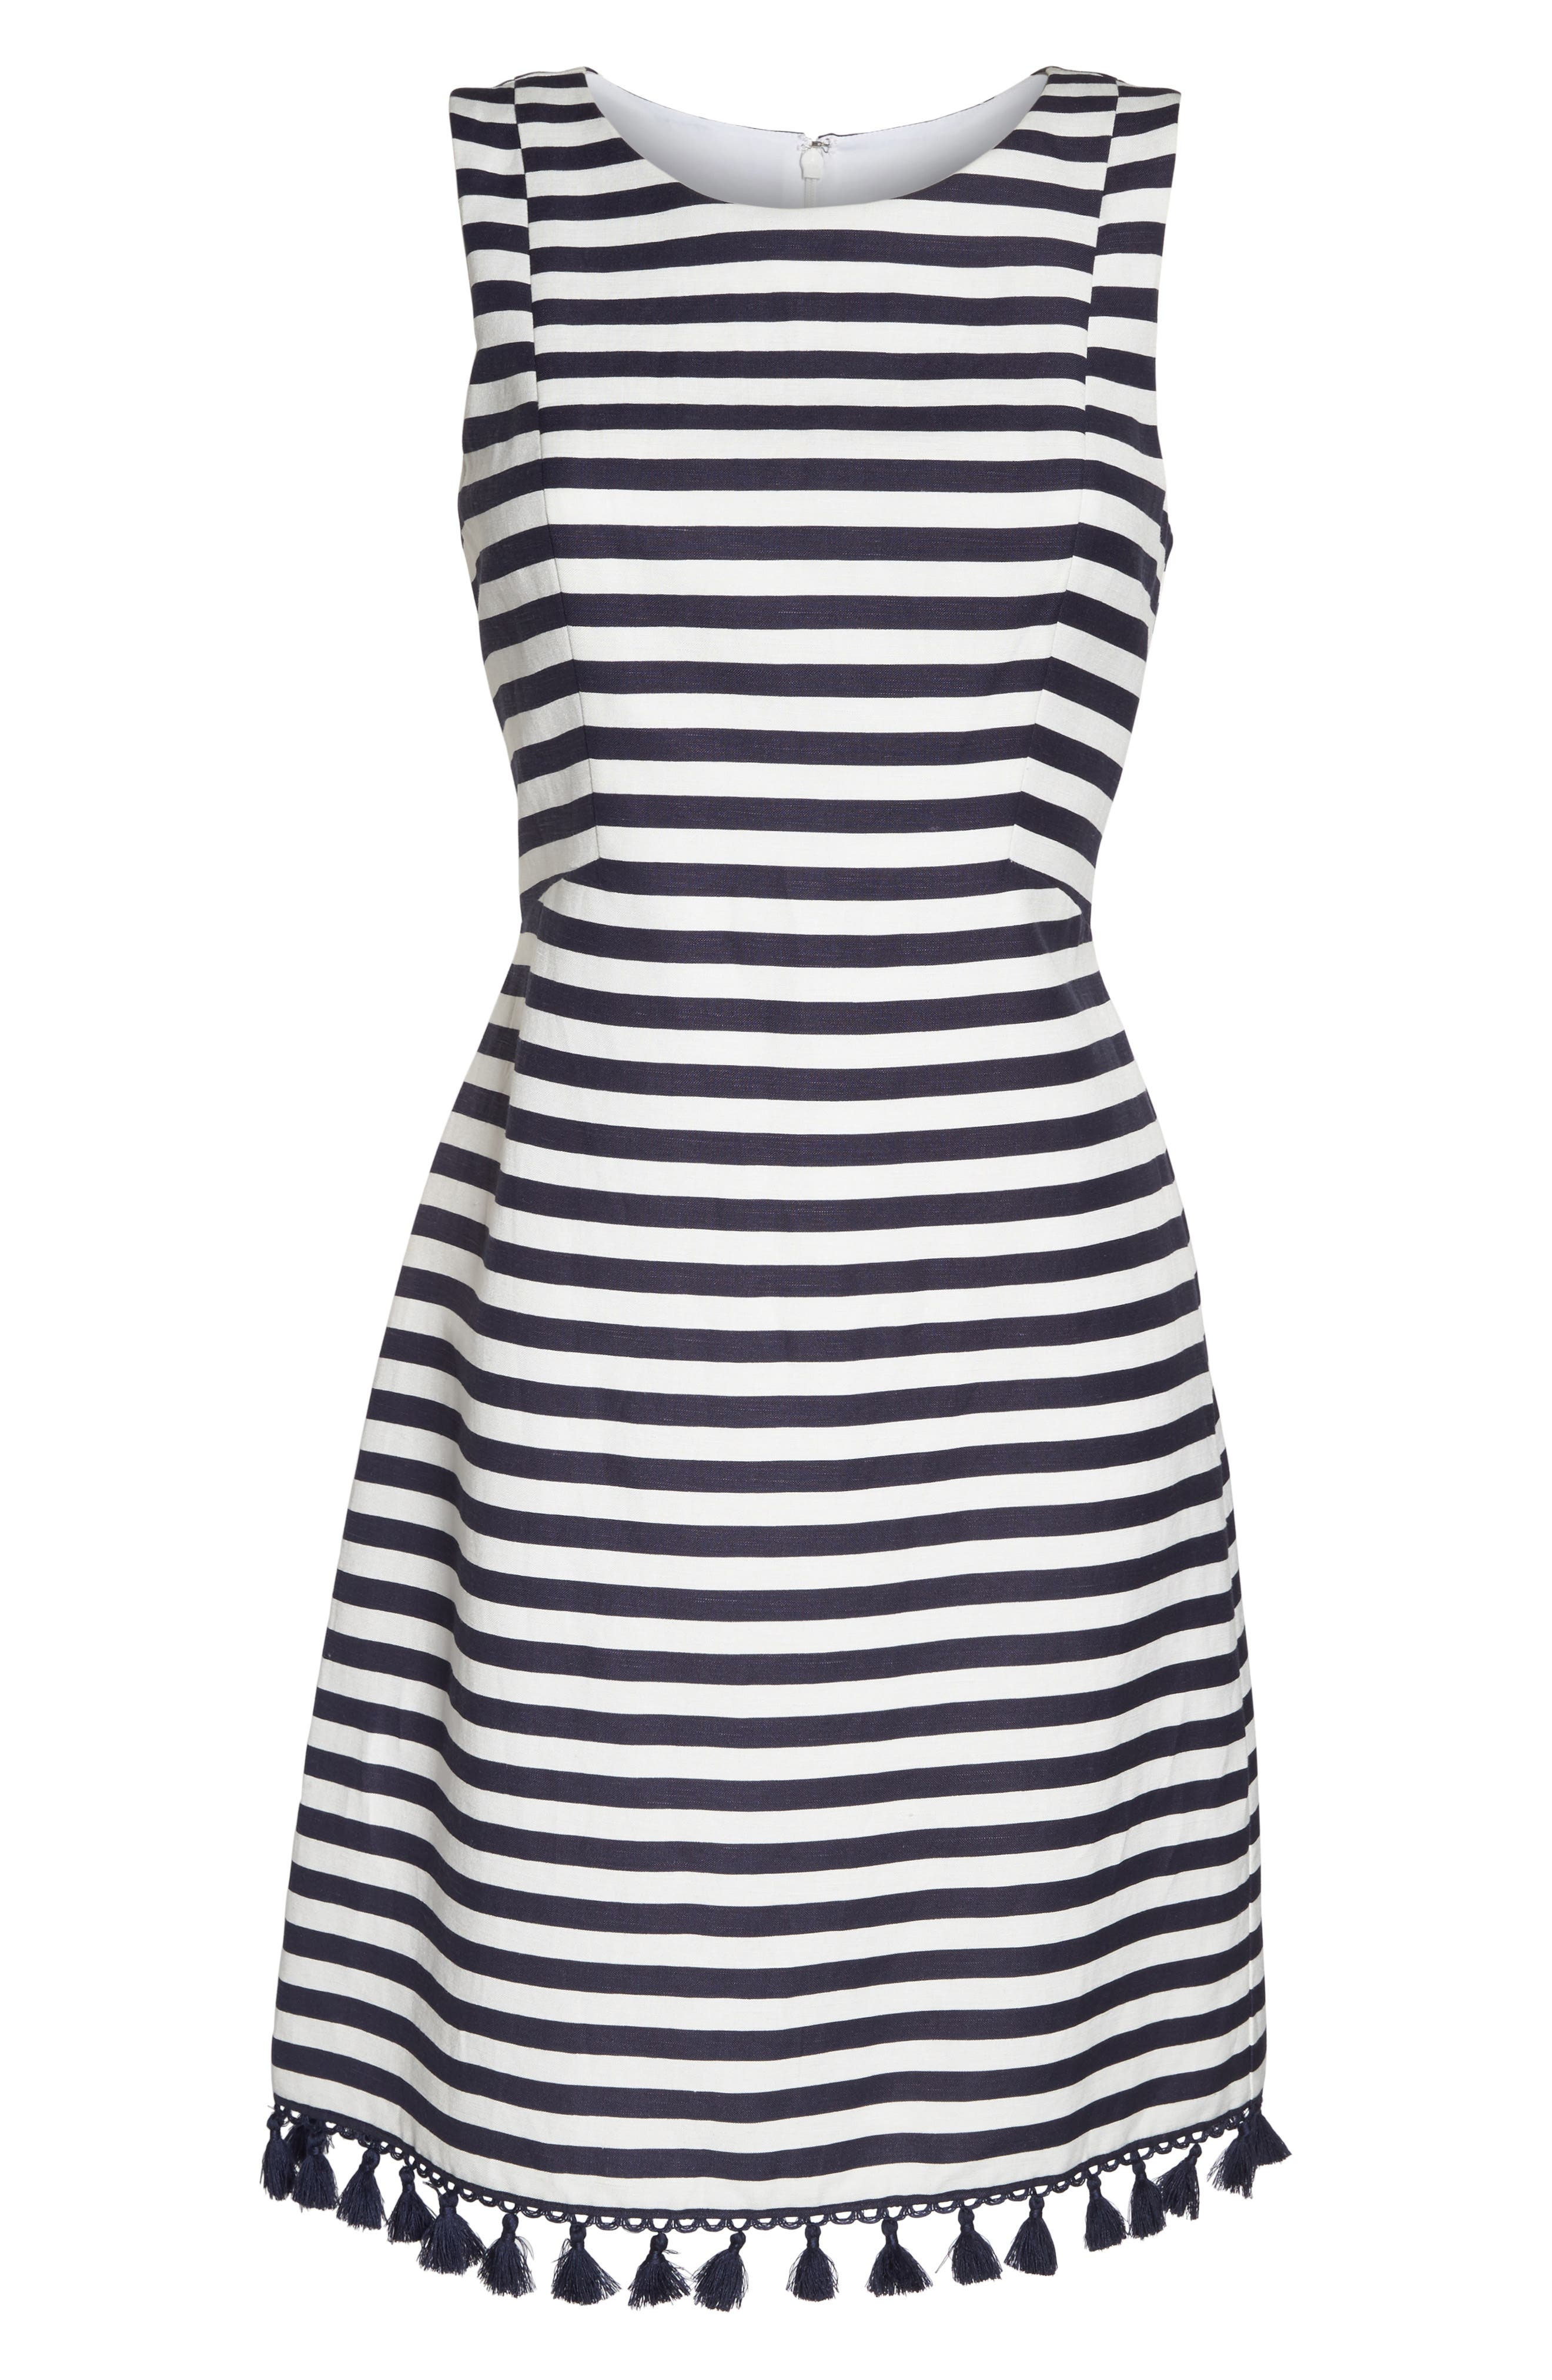 Stripe A-Line Dress,                             Alternate thumbnail 6, color,                             Navy/ White